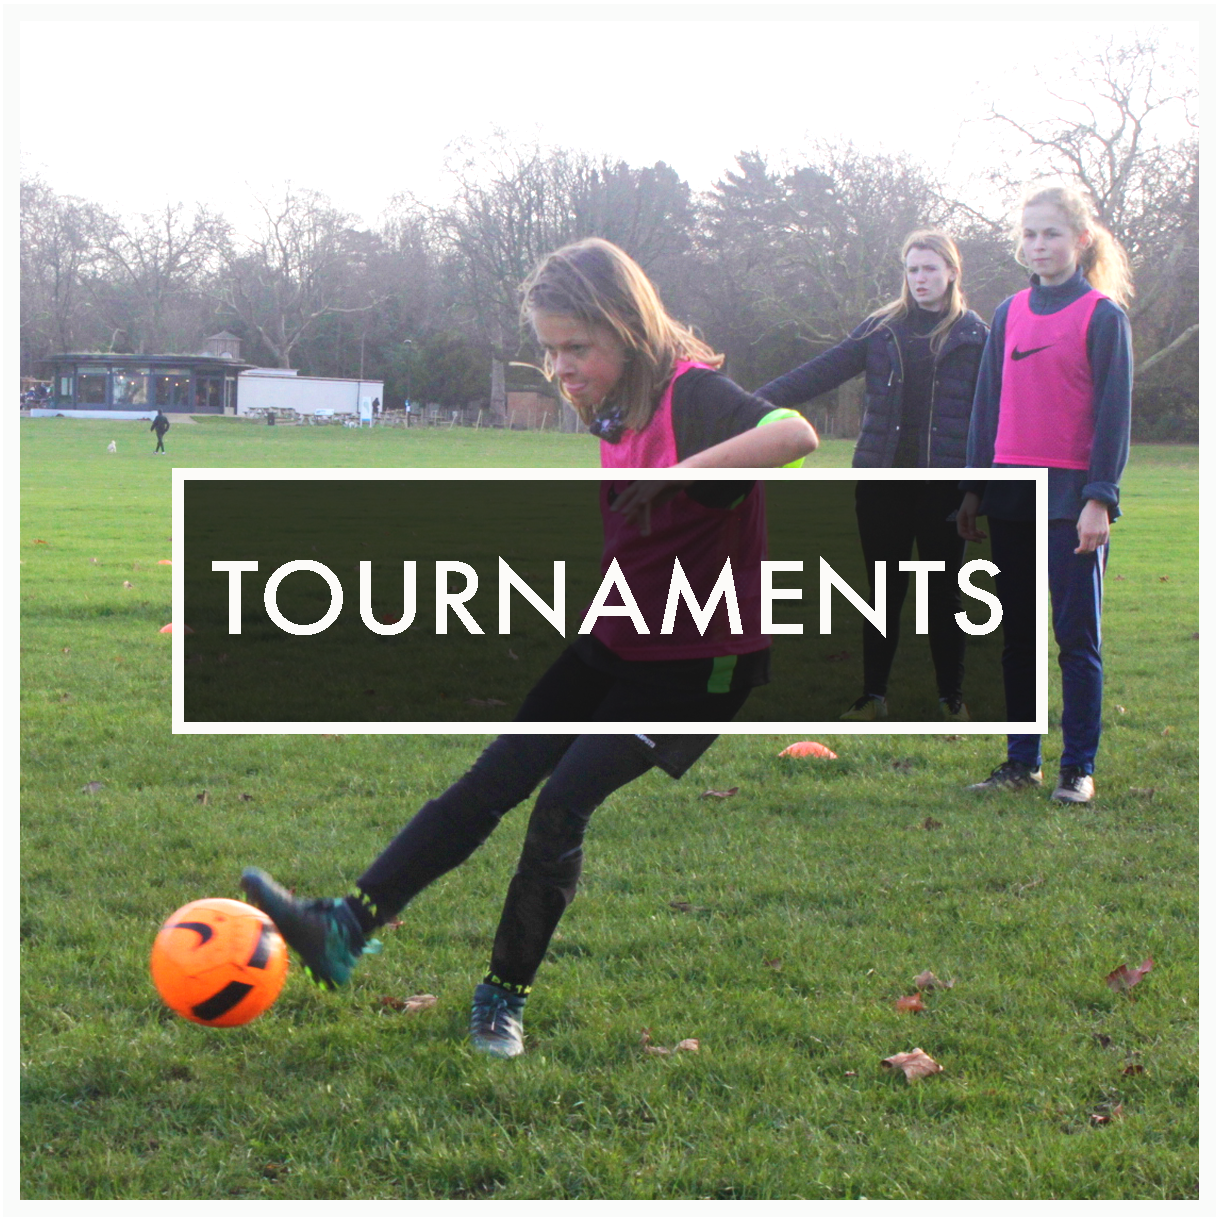 LEAD YOUR TEAM TO VICTORY.   Participate in Girls United tournaments, support charitable causes and help us  score goals across continents   Our upcoming tournament in partnership with Peckham Town FC celebrates  International Women's Day